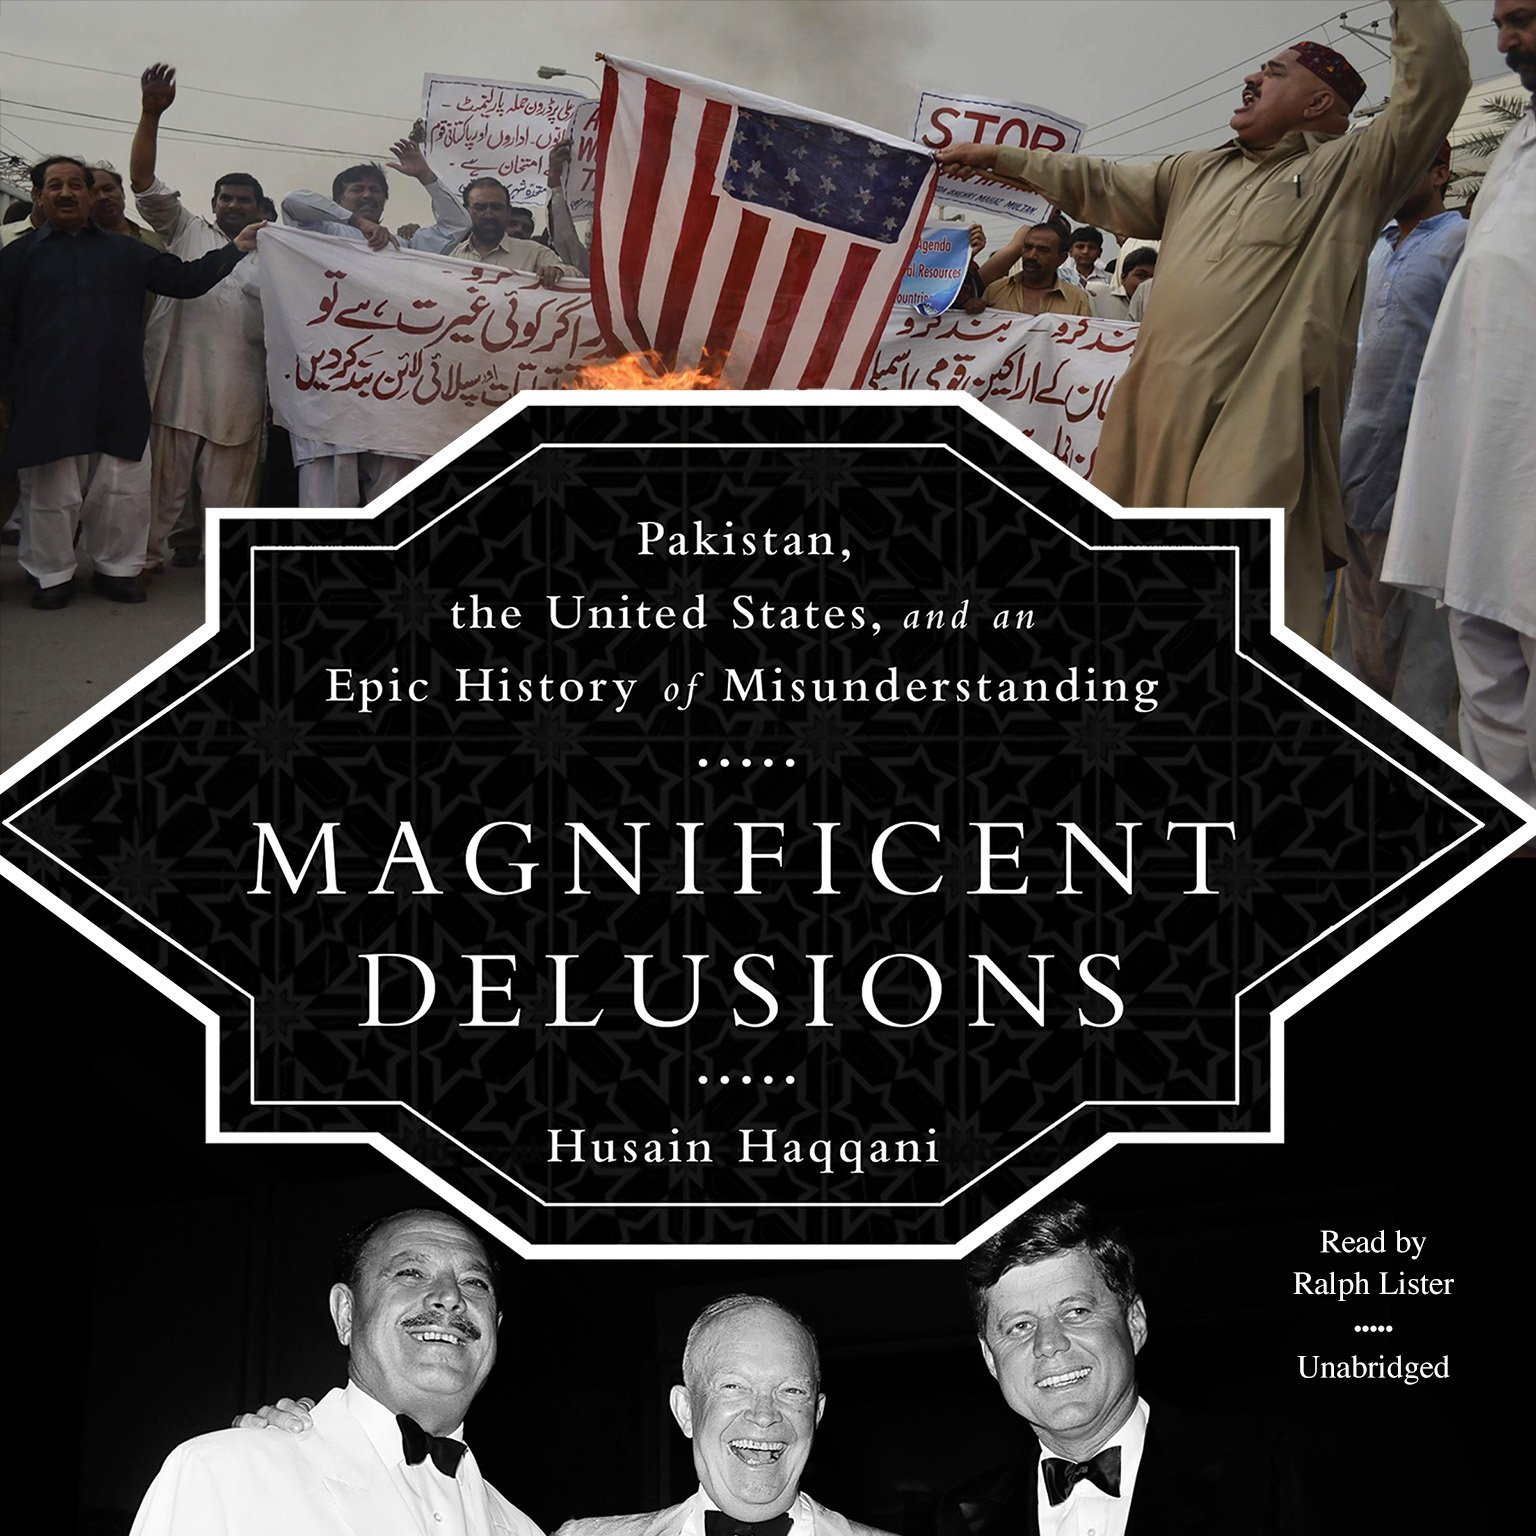 Magnificent Delusions - Pakistan, the United States, and an Epic History of Misunderstanding  - Husain Haqqani